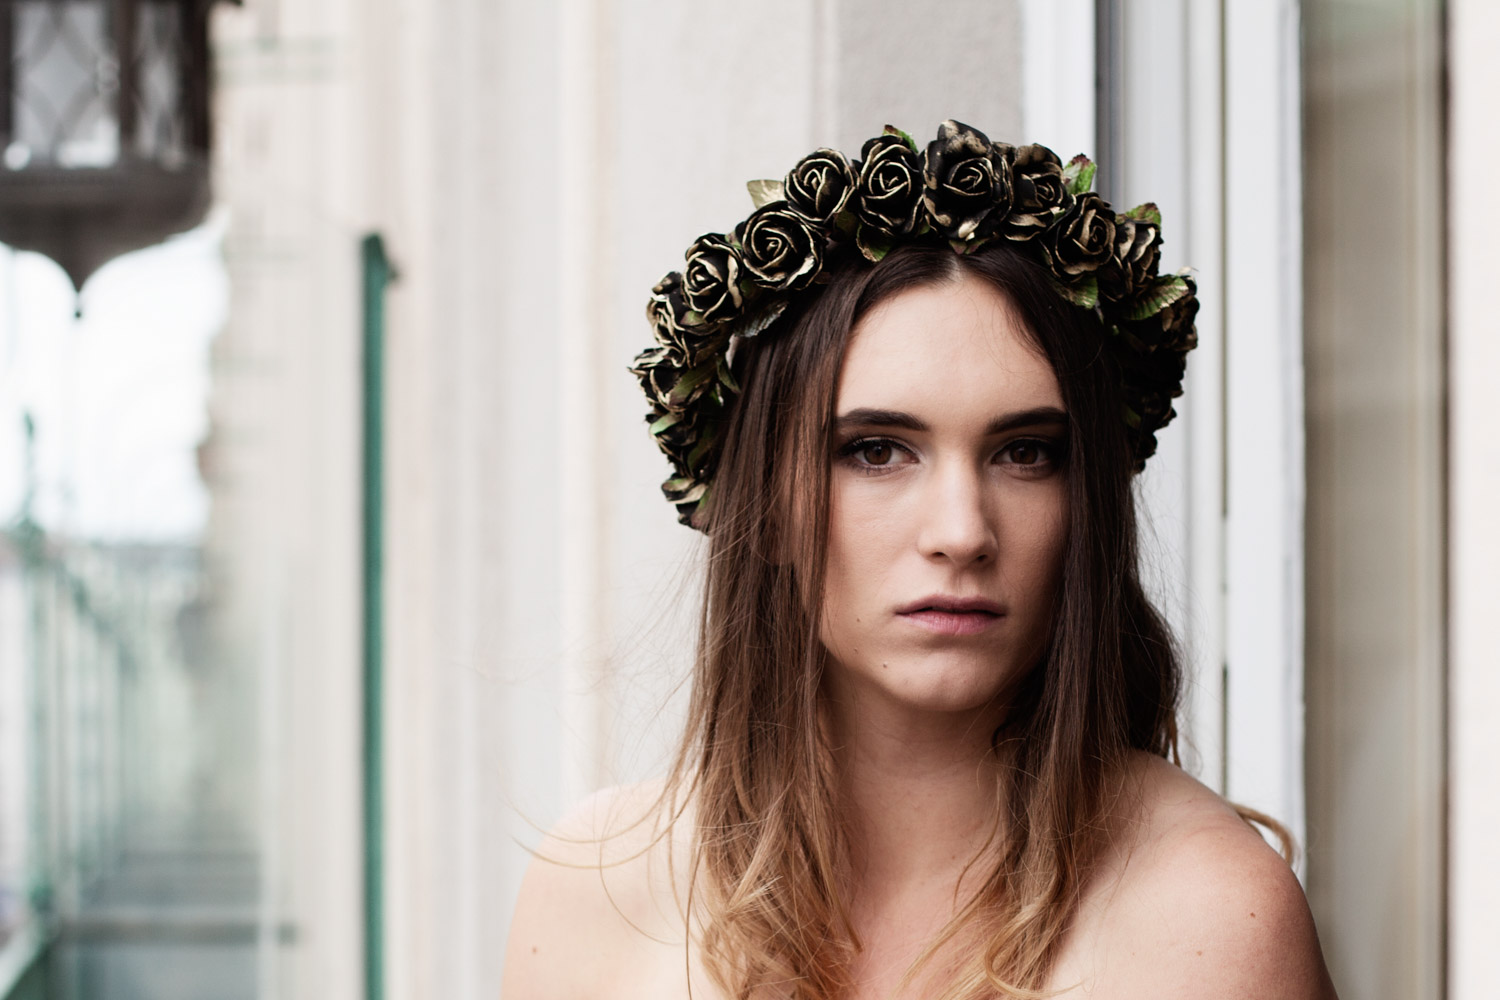 We-Are-Flowergirls_Flowercrown_Golden-Collection_Lookbook_by_Victoria-Herbig_07_WEB.jpg